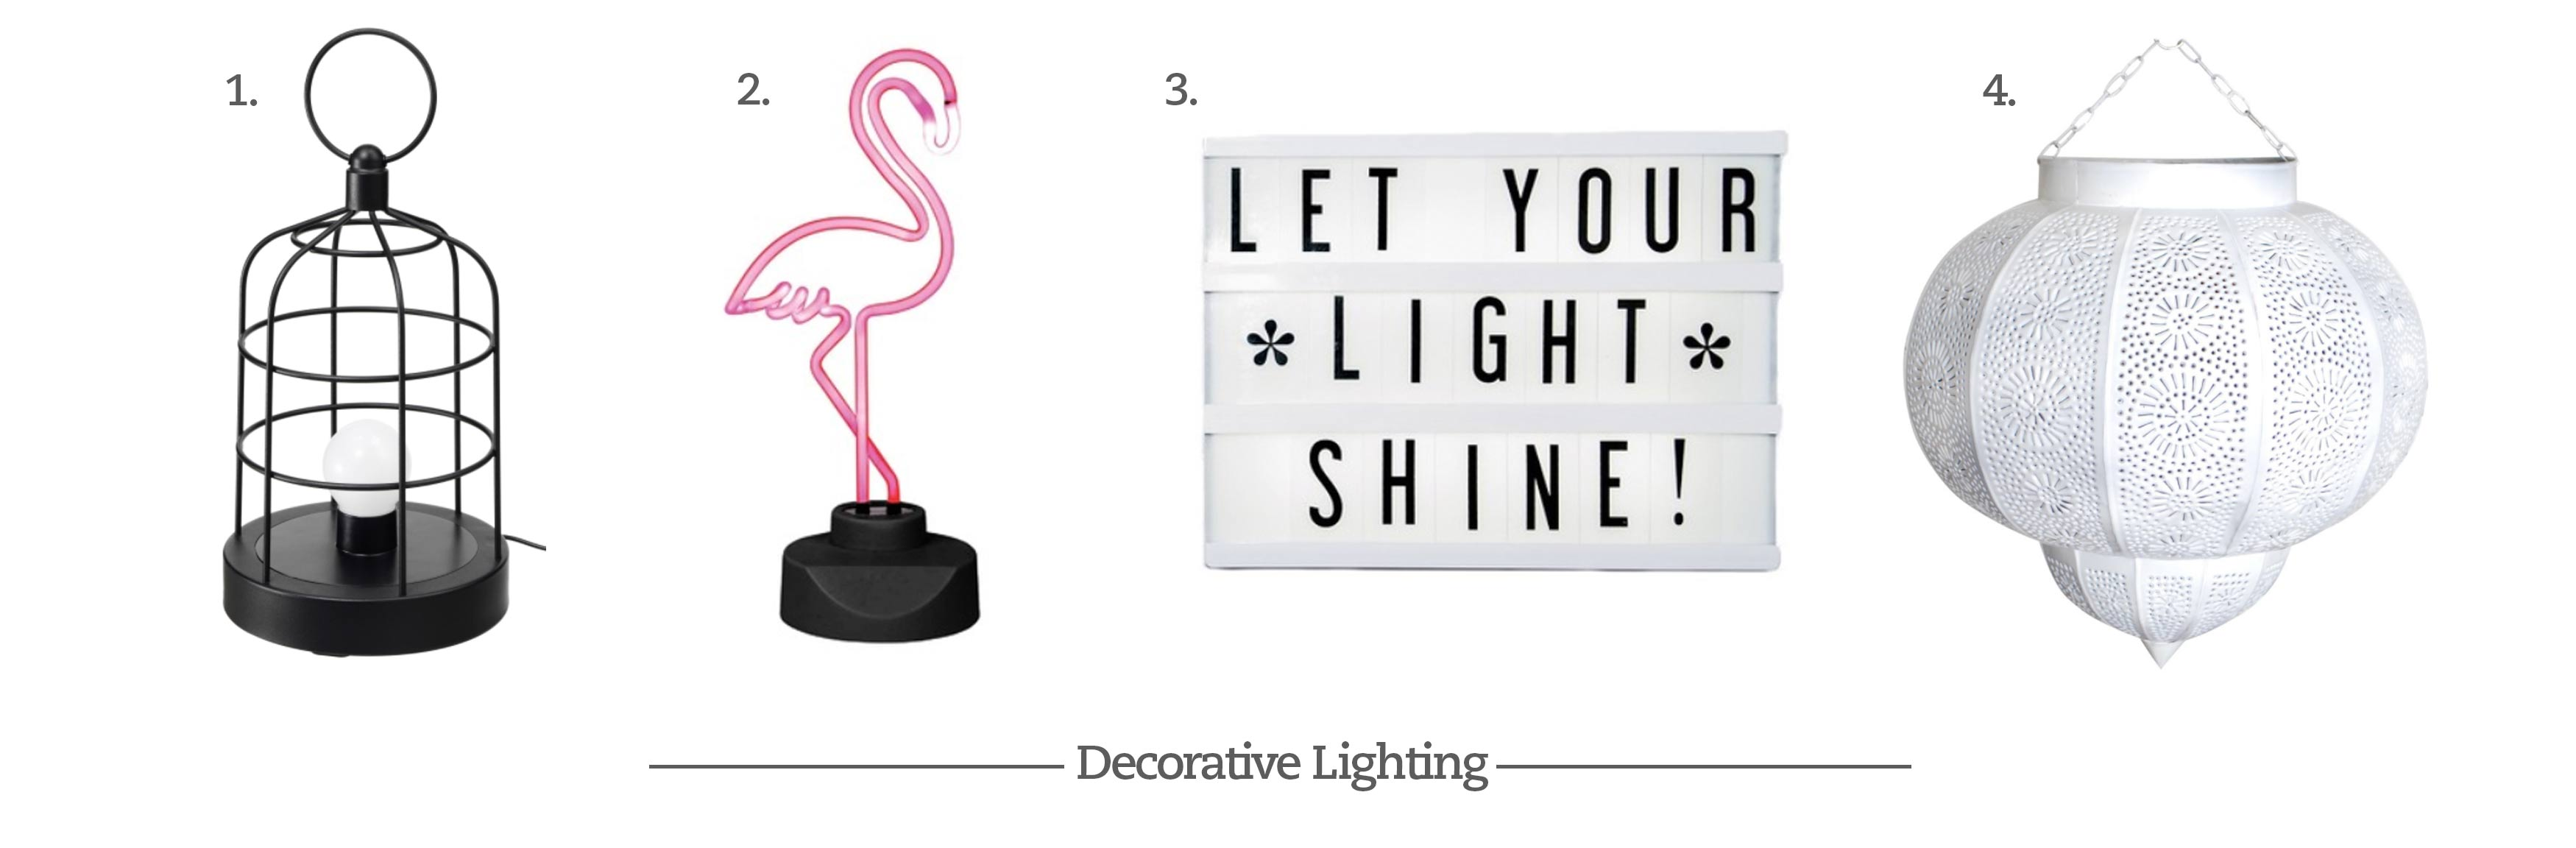 Decorative Lighting Options